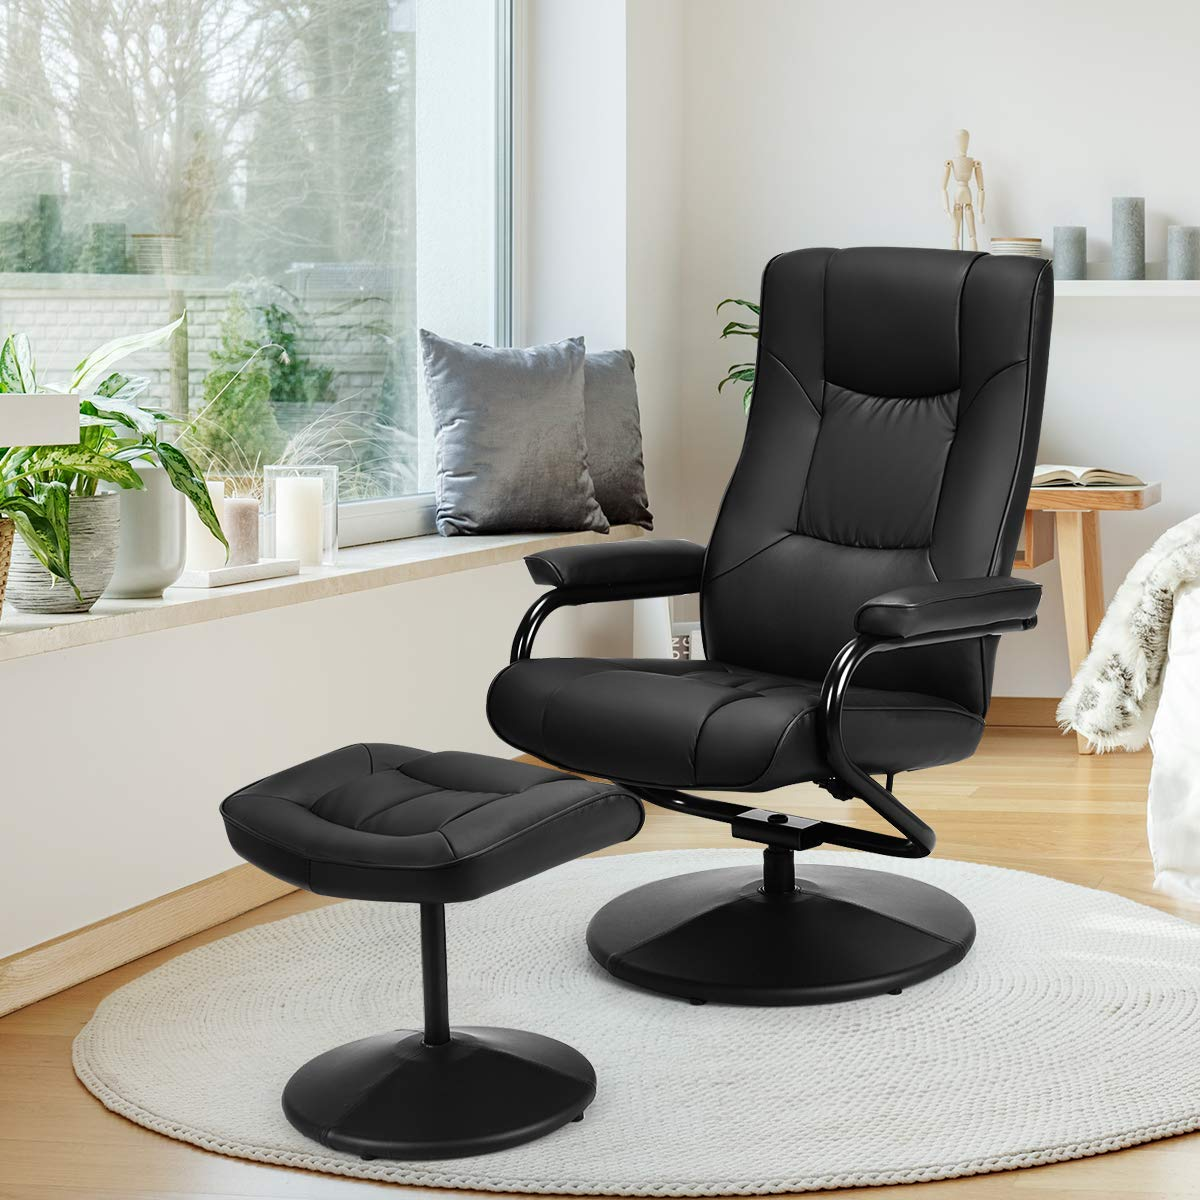 Giantex Swivel Recliner Chair w/Ottoman, 360 Degree Swivel PU Leather Chair